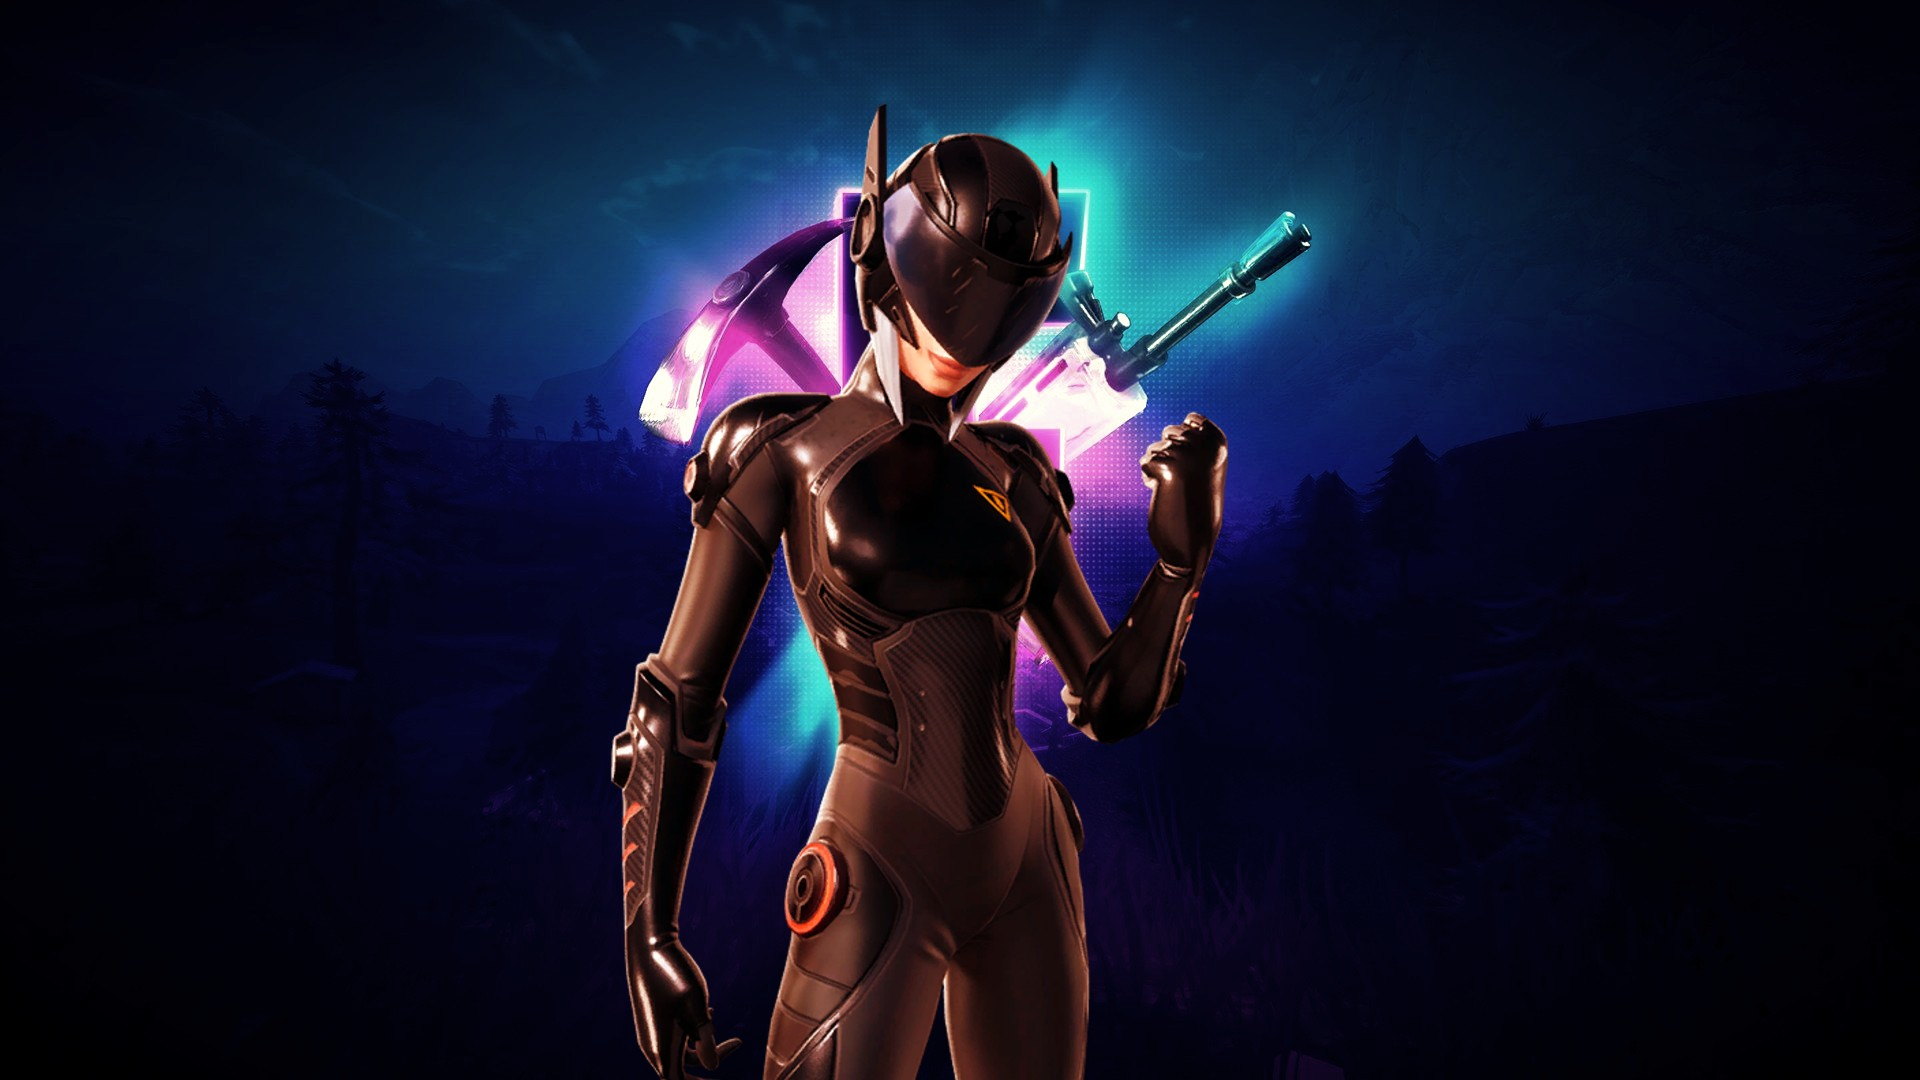 Payback Fortnite Skin Easy Way To Get It Unique Hq Wallpapers Mega Themes